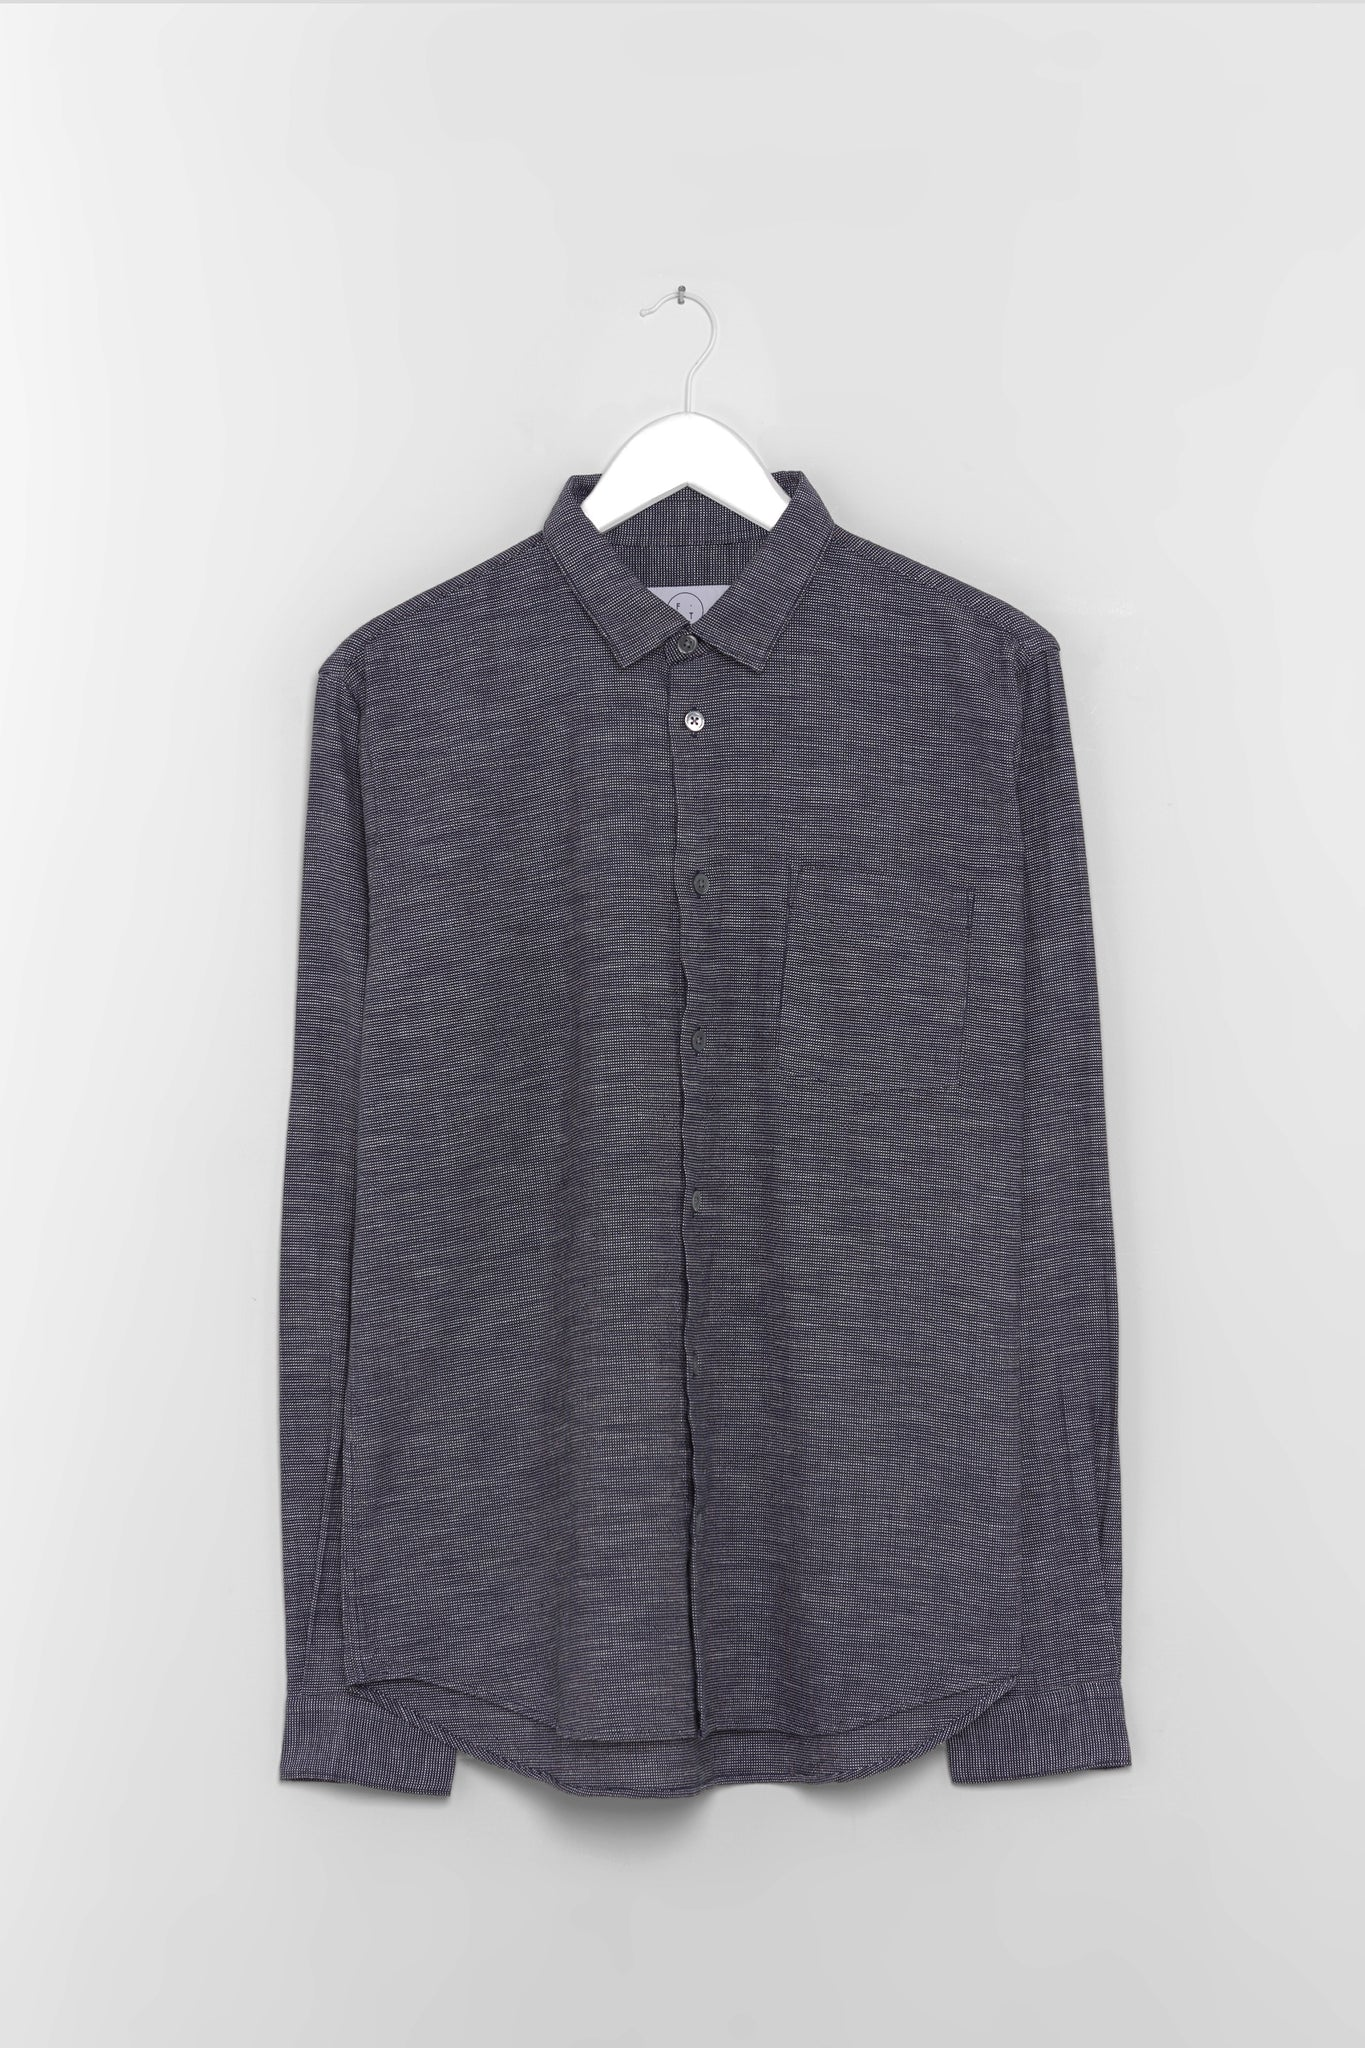 Form & Thread Essential Shirt - Navy Needlepoint Check